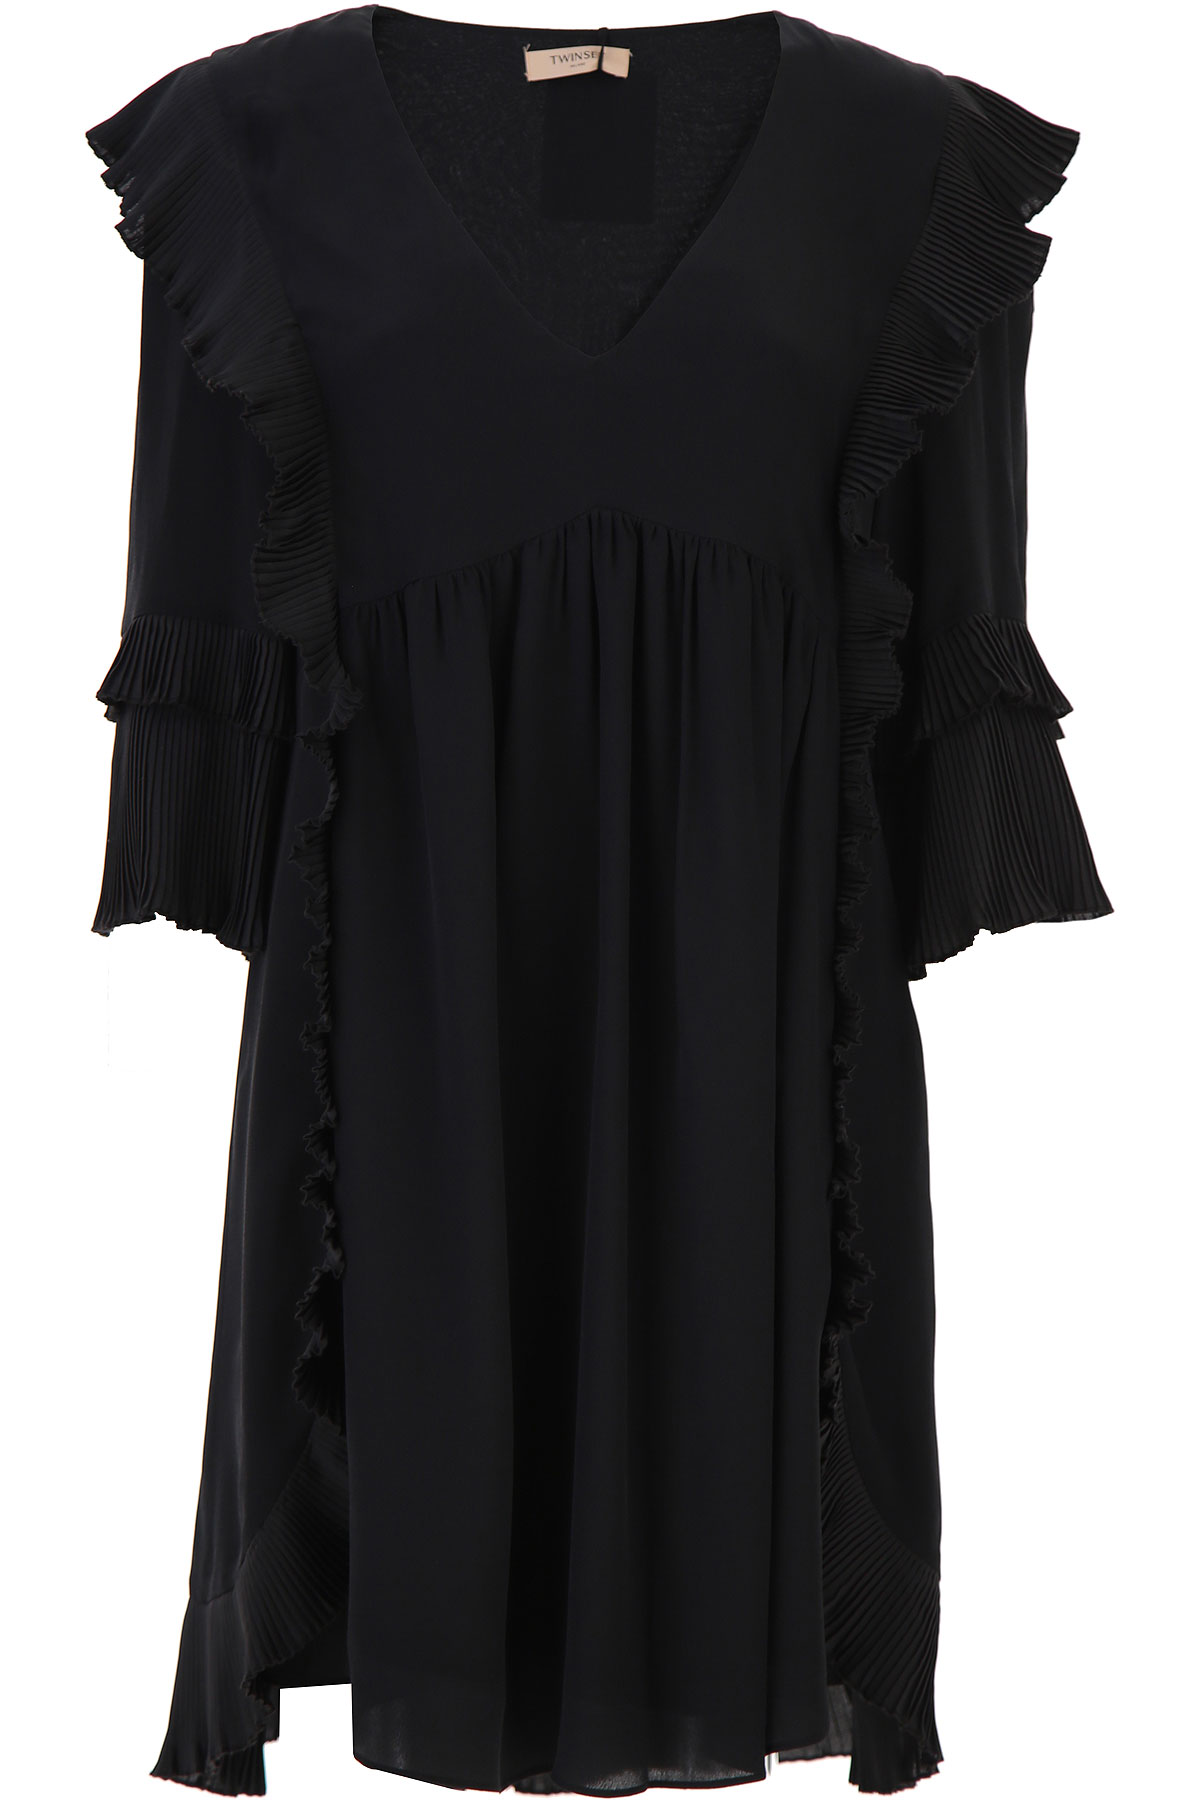 Twin Set by Simona Barbieri Dress for Women, Evening Cocktail Party On Sale, Black, viscosa, 2019, 4 6 8